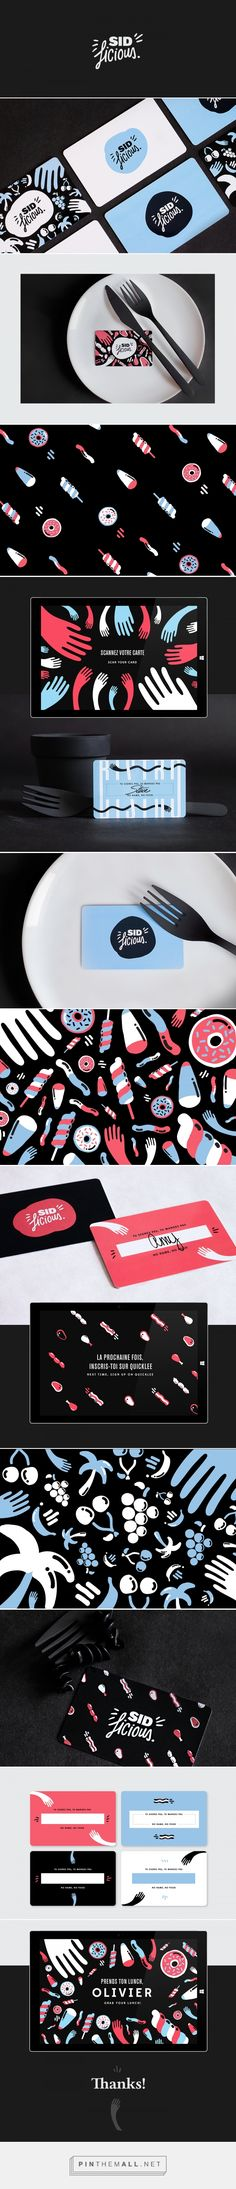 Sid Licious Bistro by Sid Lee on Behance | Fivestar Branding – Design and…